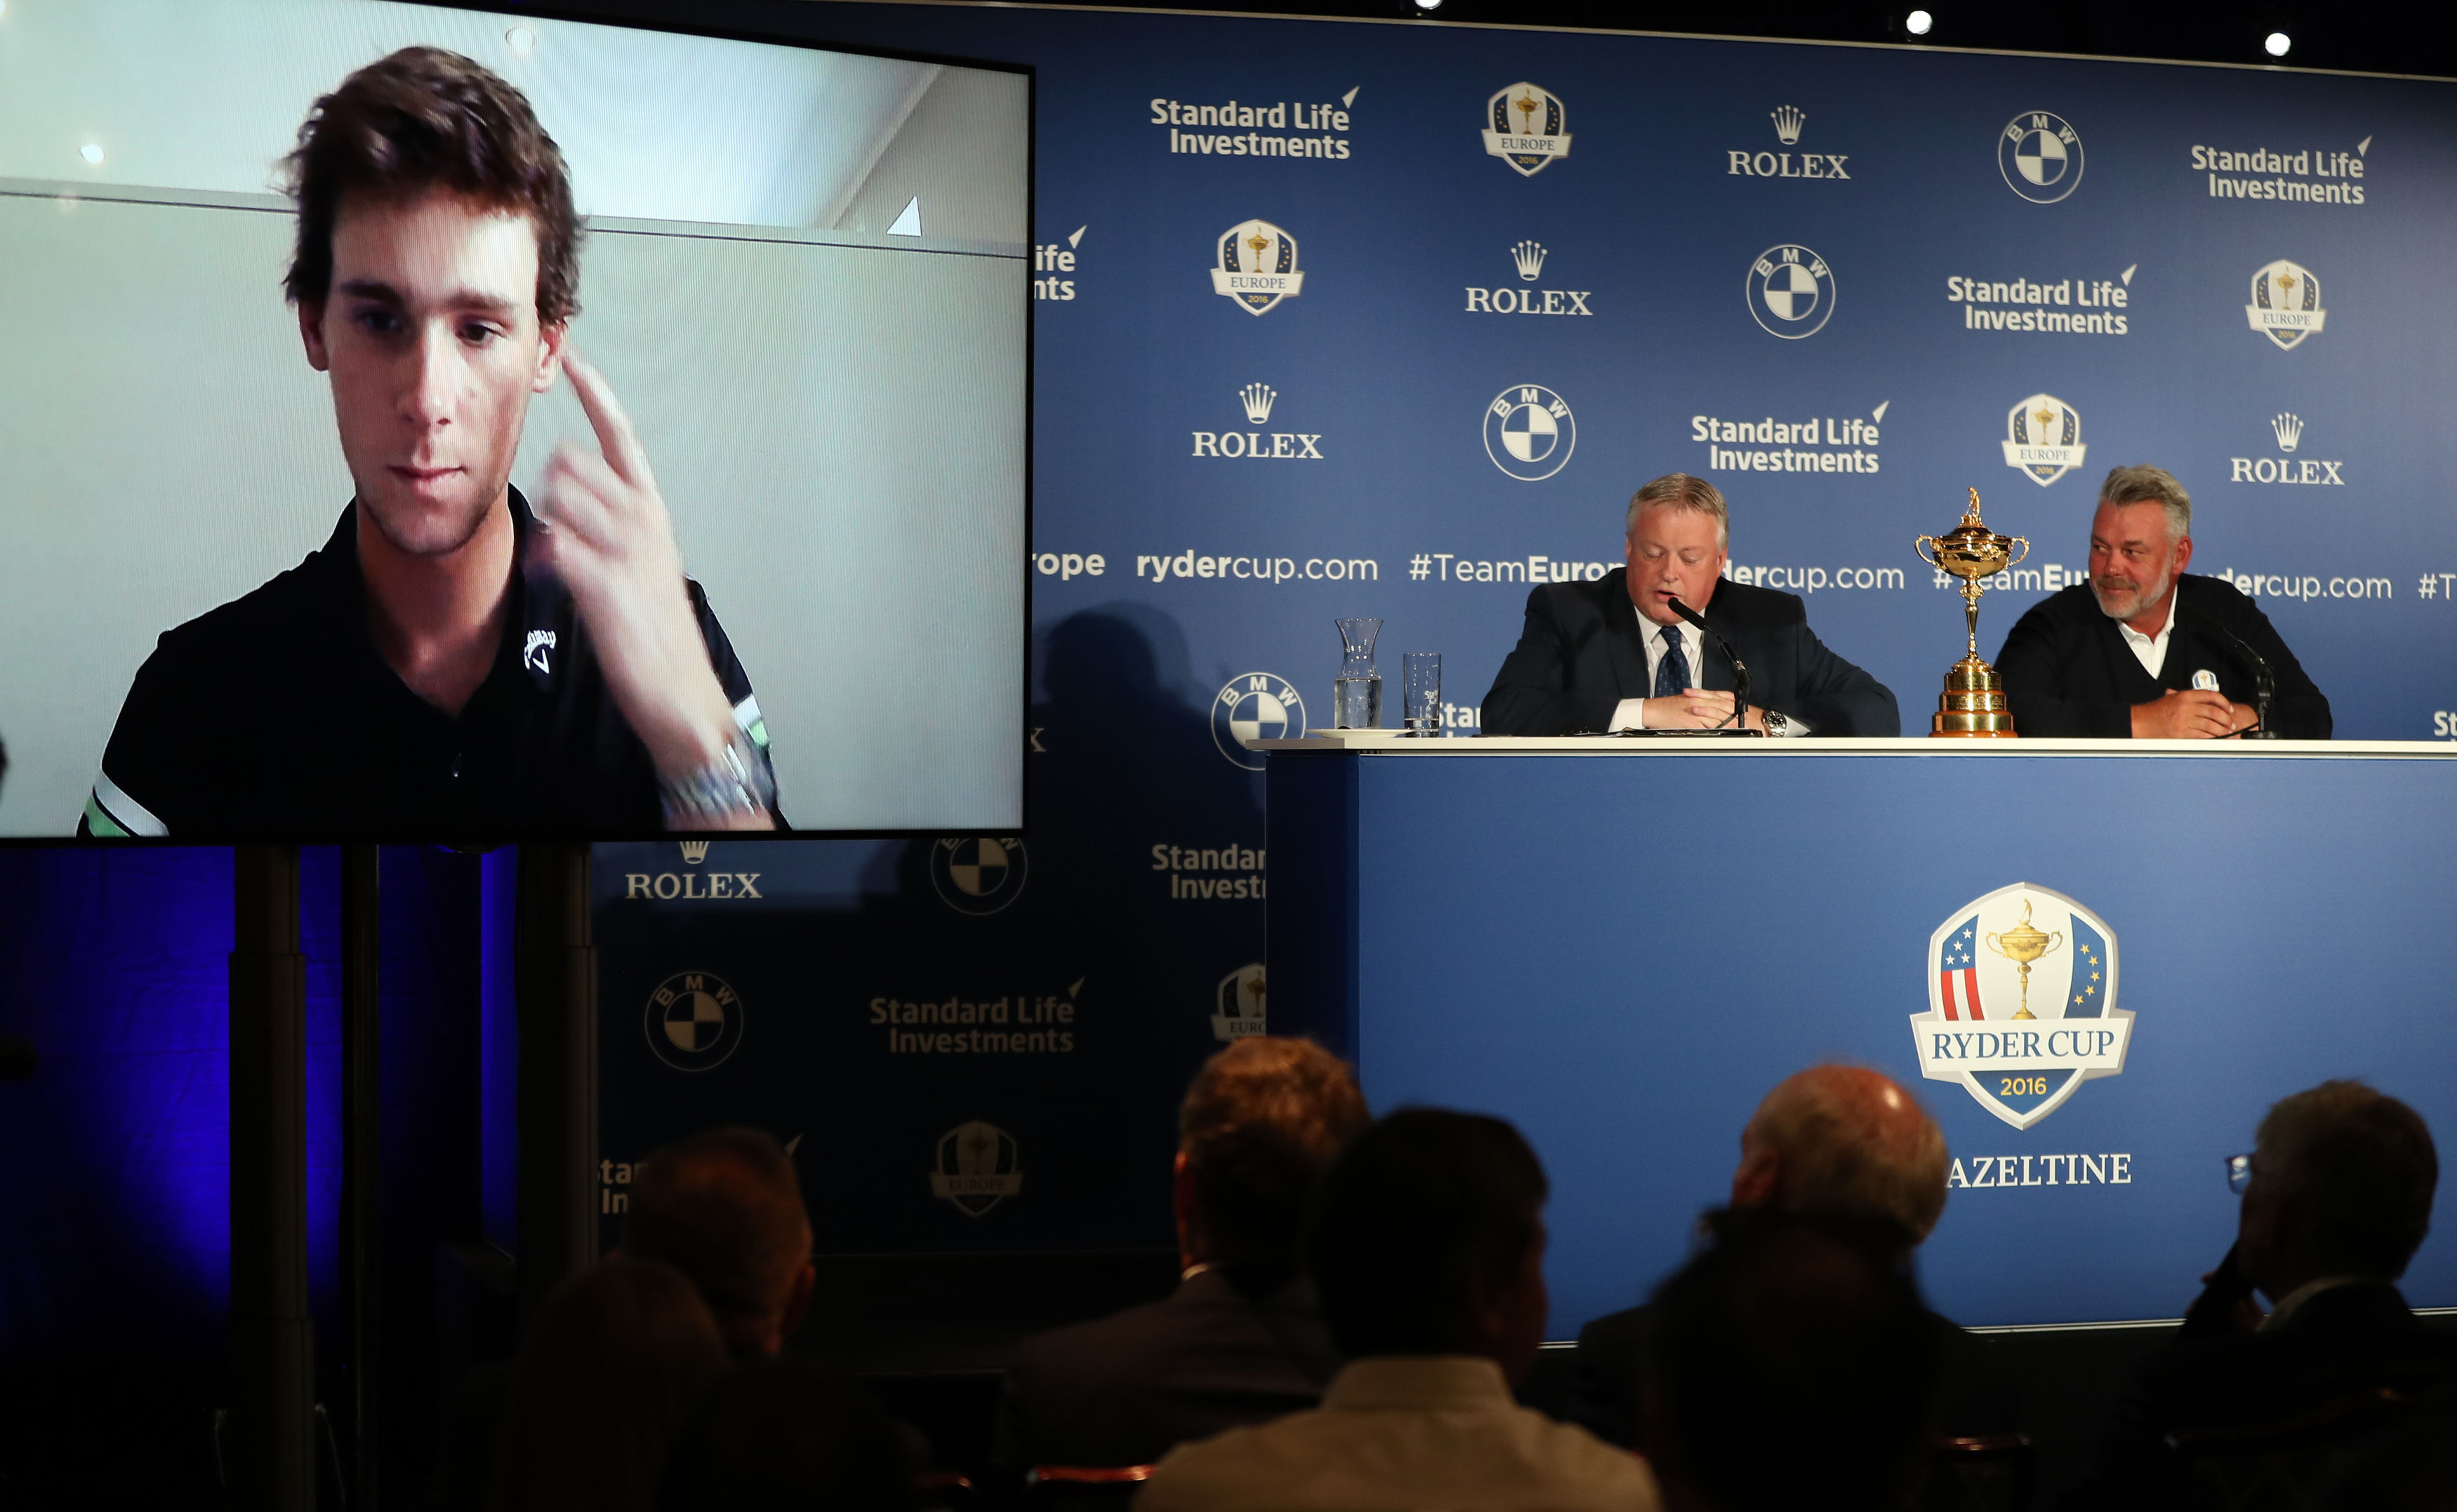 Thomas Pieters speaks by video link to the Ryder Cup wildcrad announcement with captain Darren Clarjke and the European Tour's director of communications Scott Crockett.